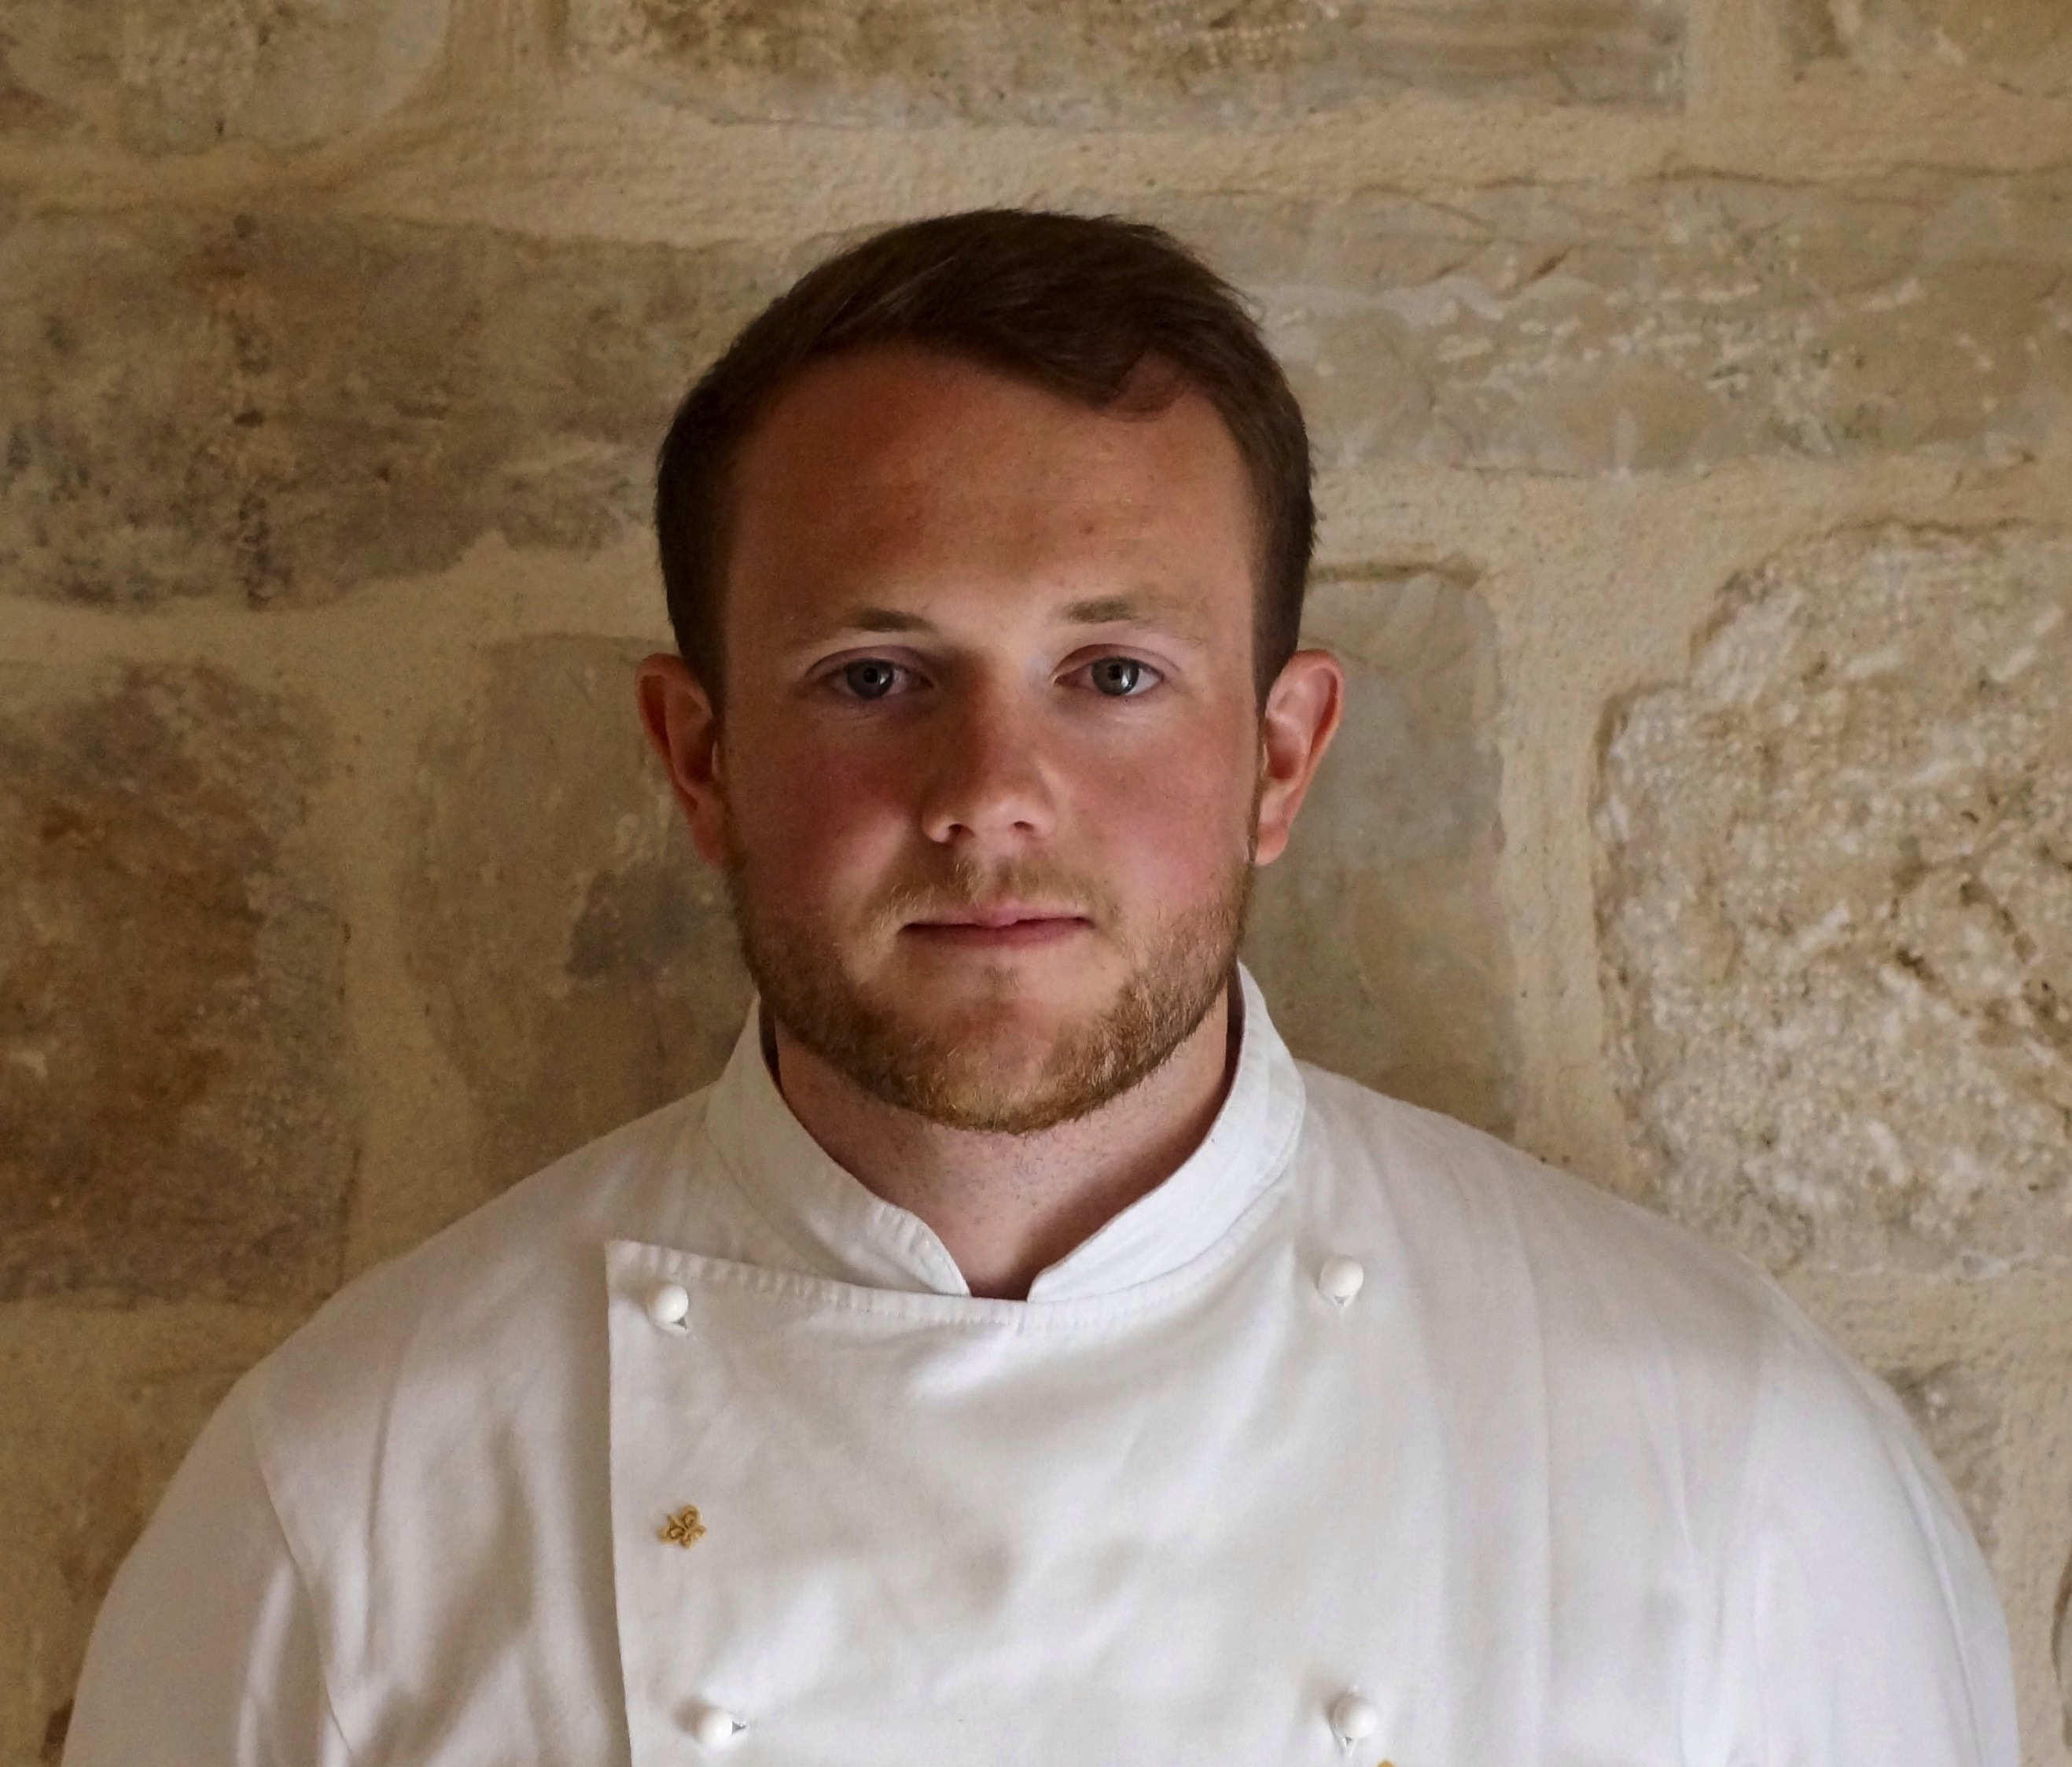 niall-keating-executive-chef-whatley-manor-hotel-and-spa